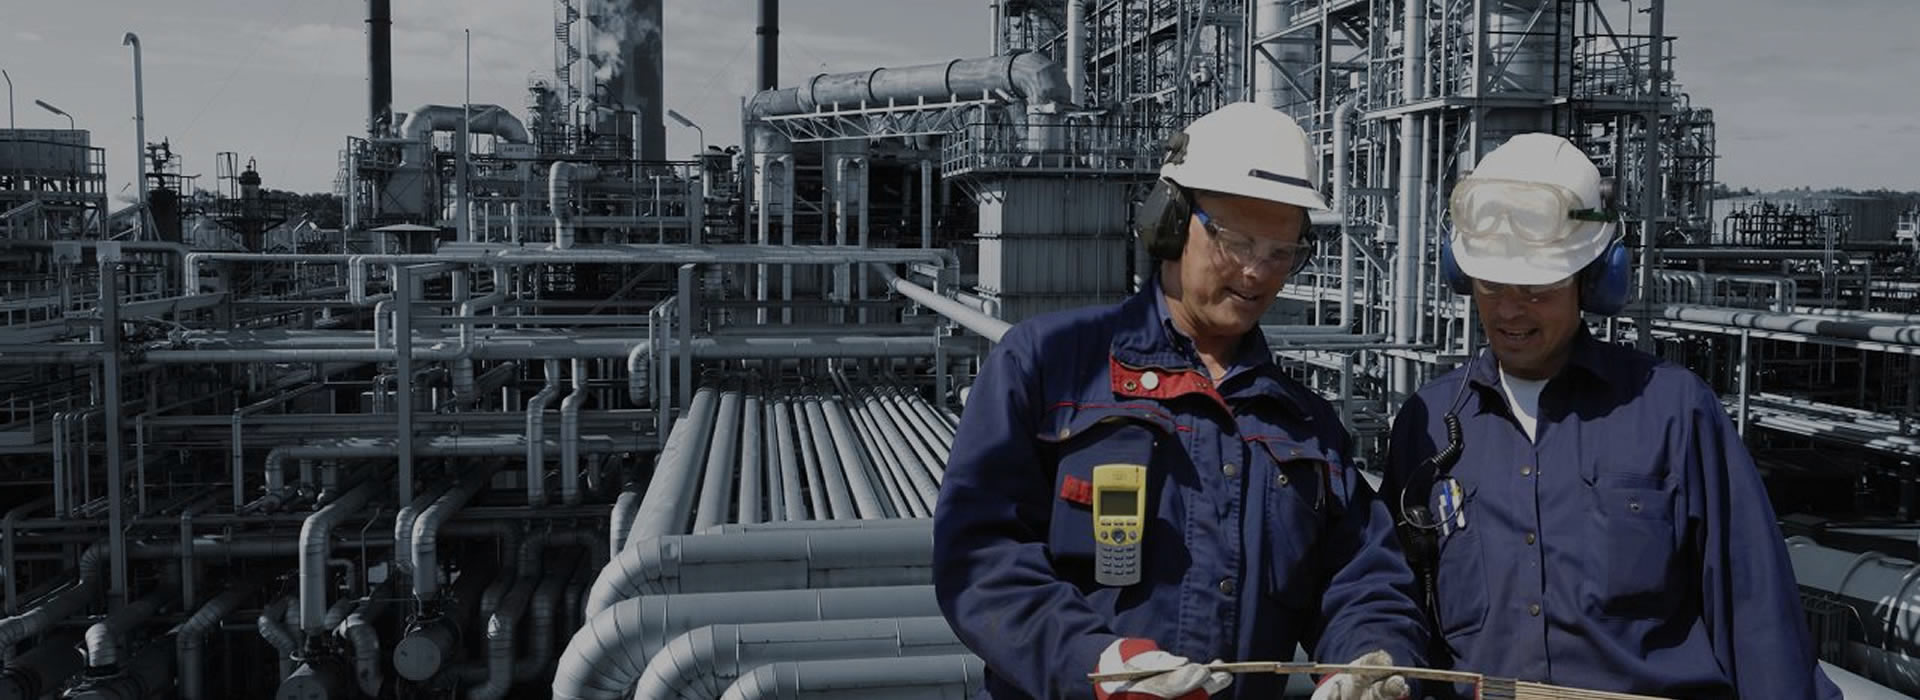 Onsite Maintenance Engineering and Fabrication Solutions